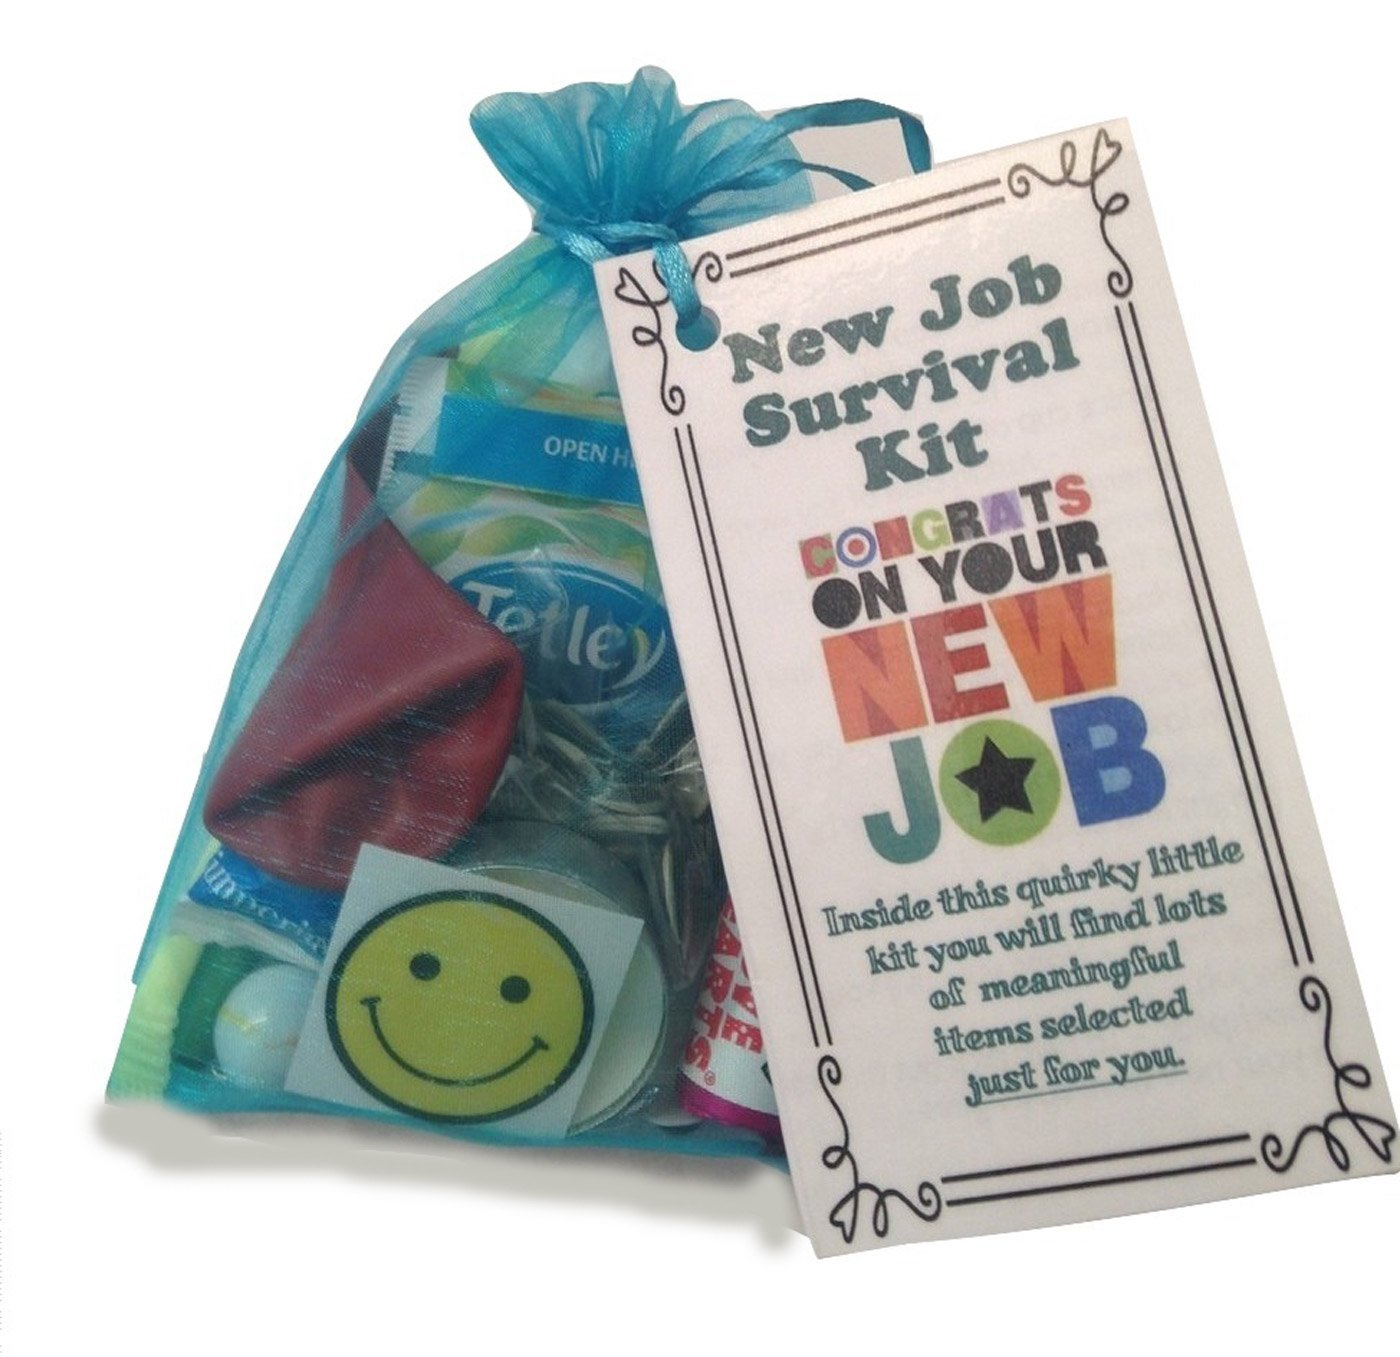 New Job Survival Kit Gift (Great novelty gift or alternative to a ...